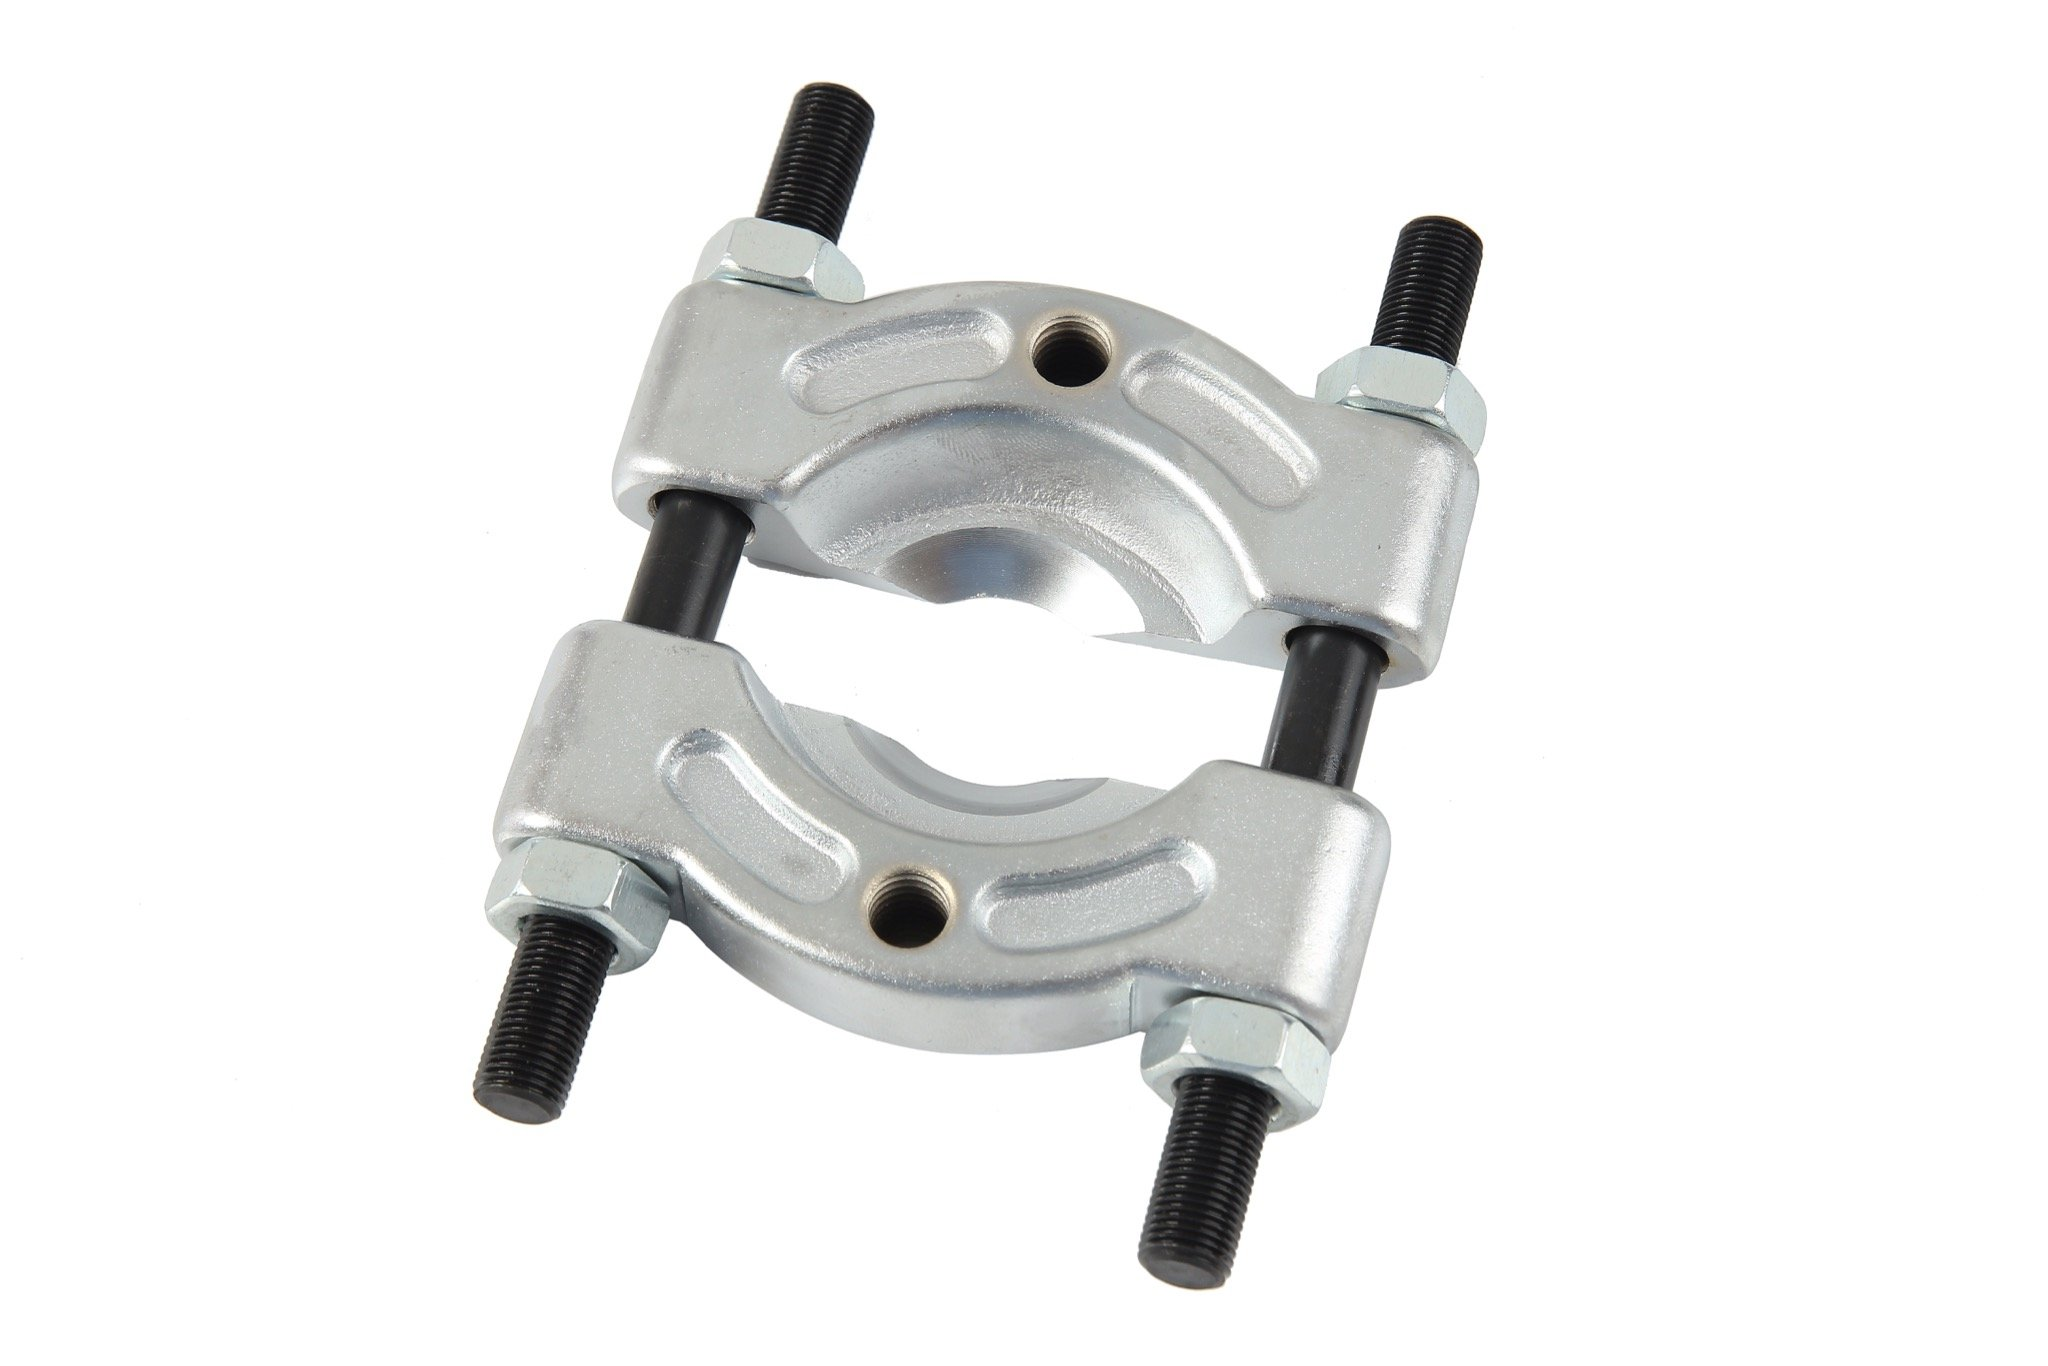 Shankly Bearing Separator (75-105mm or 2.95' - 4.13' inches), Large Bearing Splitter